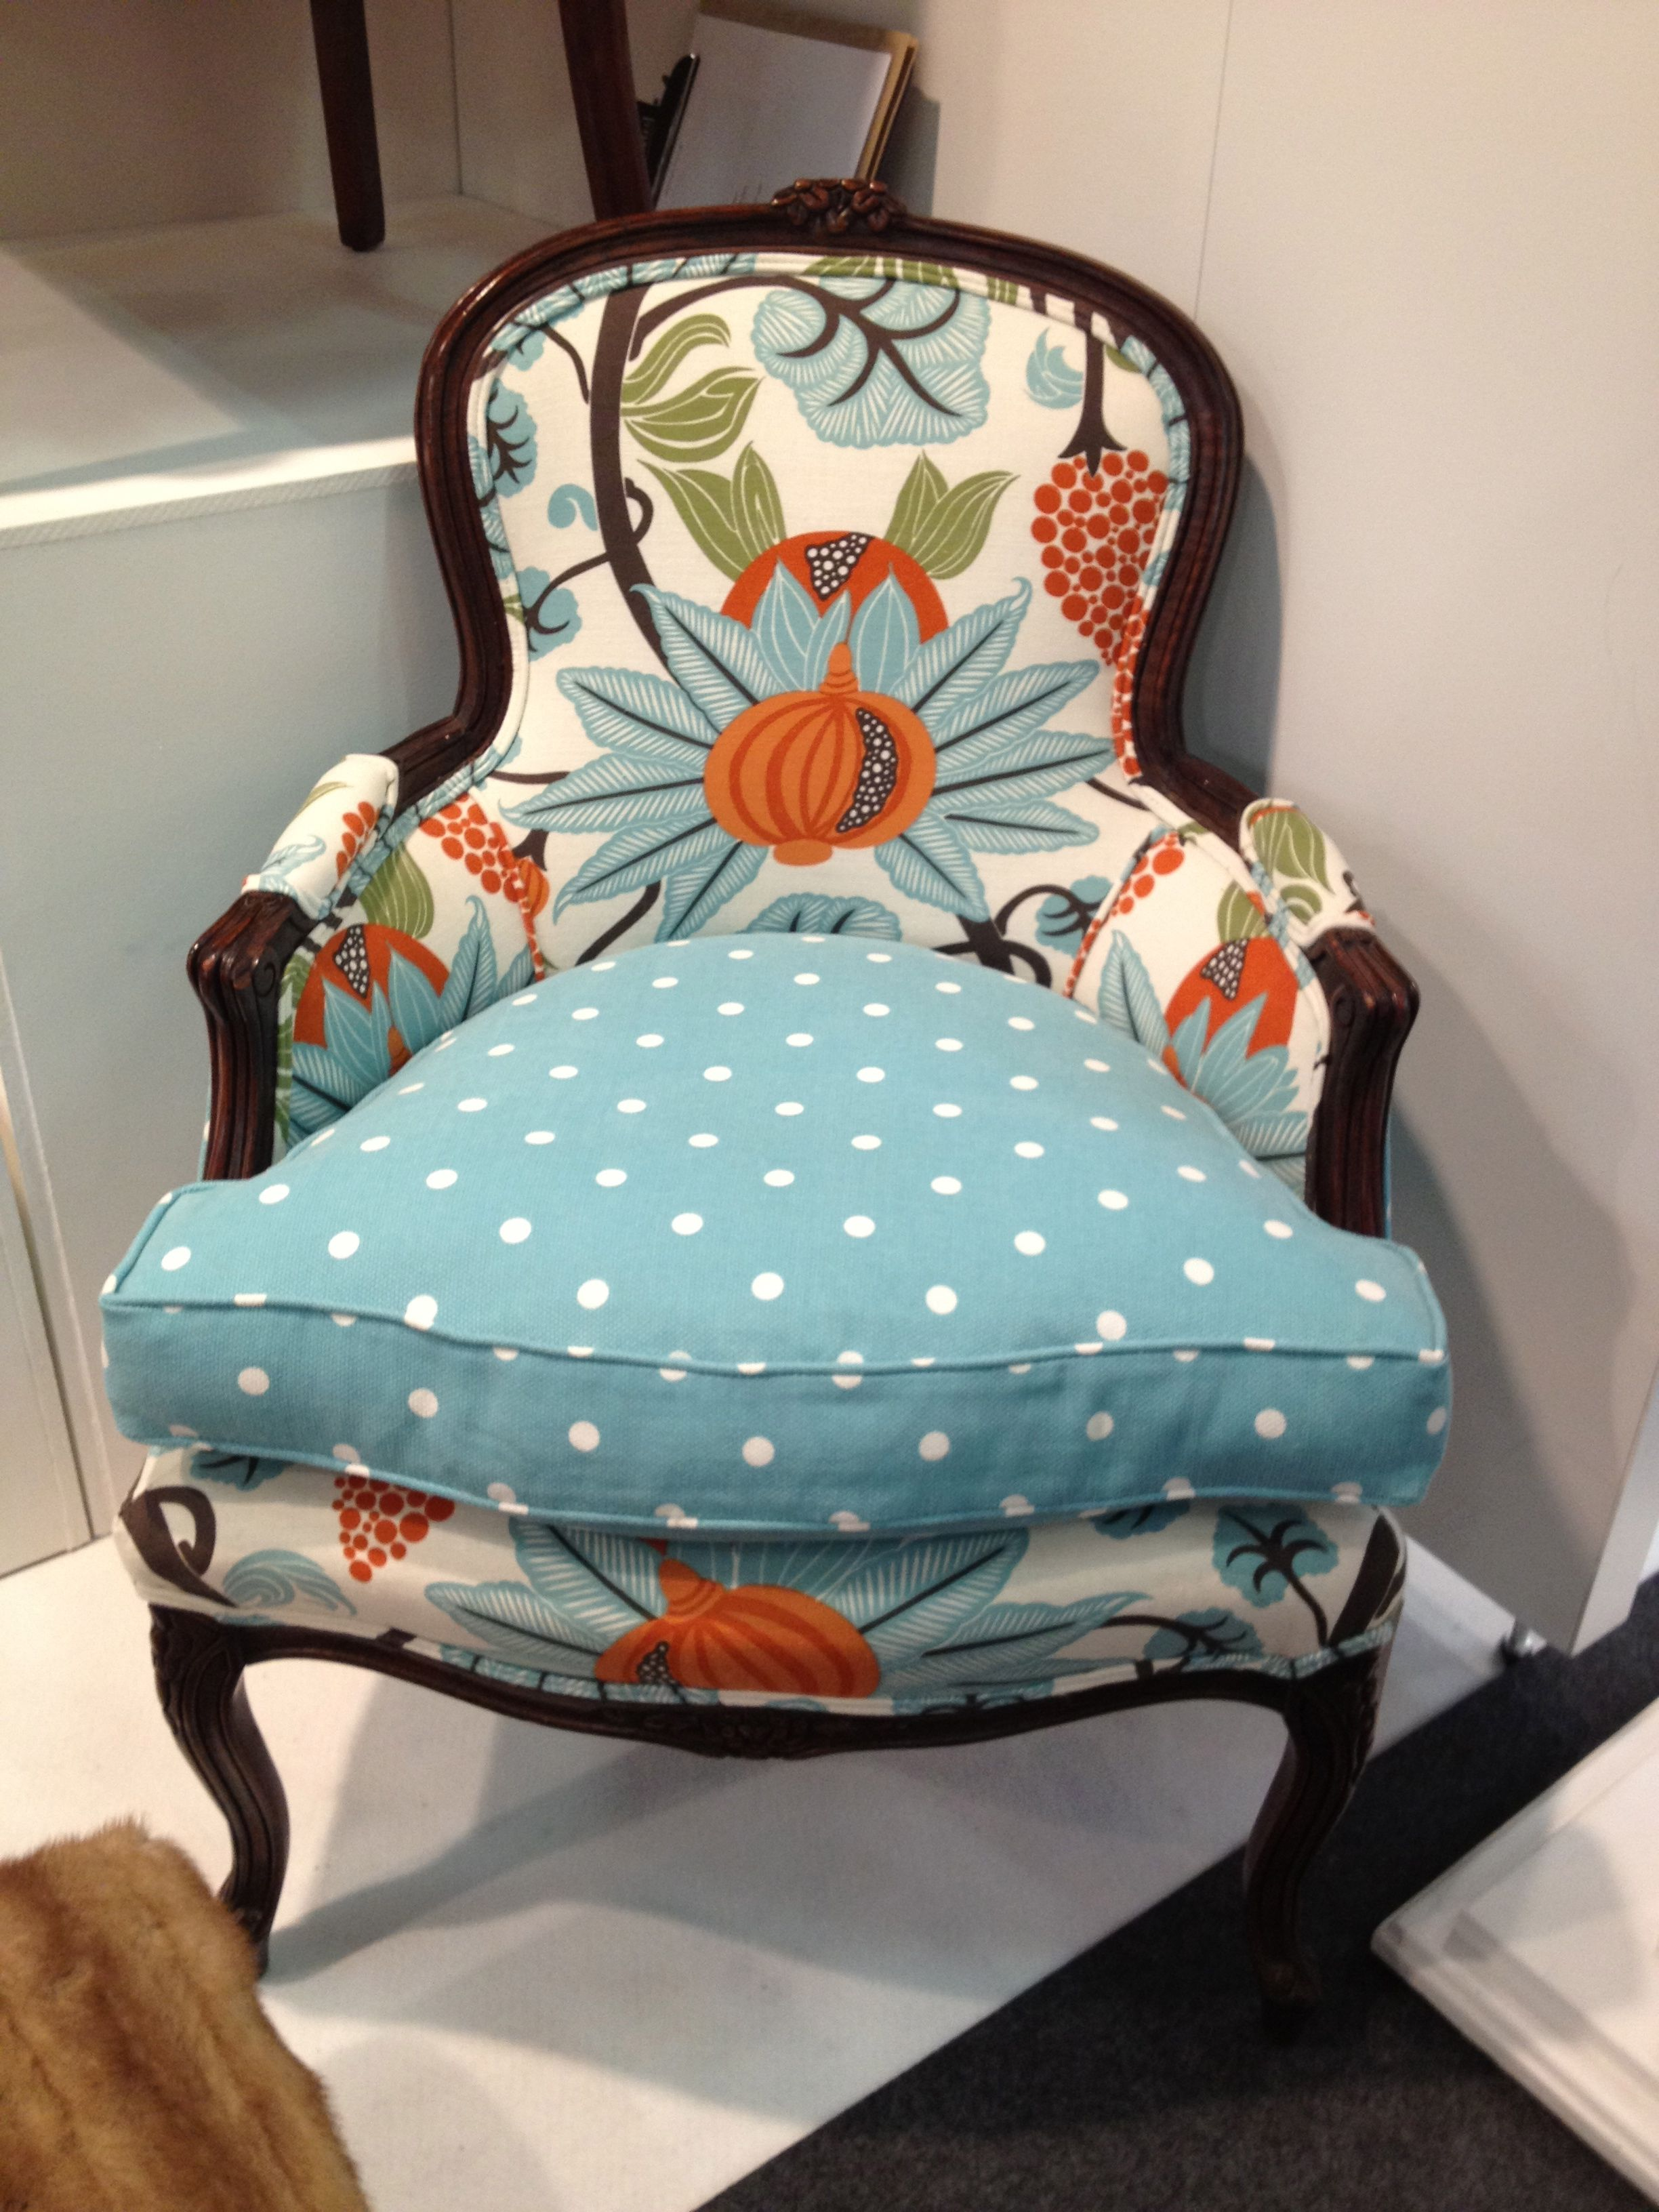 Big Comfy Chair Lily Or Leona Eclectic Chair Upholstered Chairs